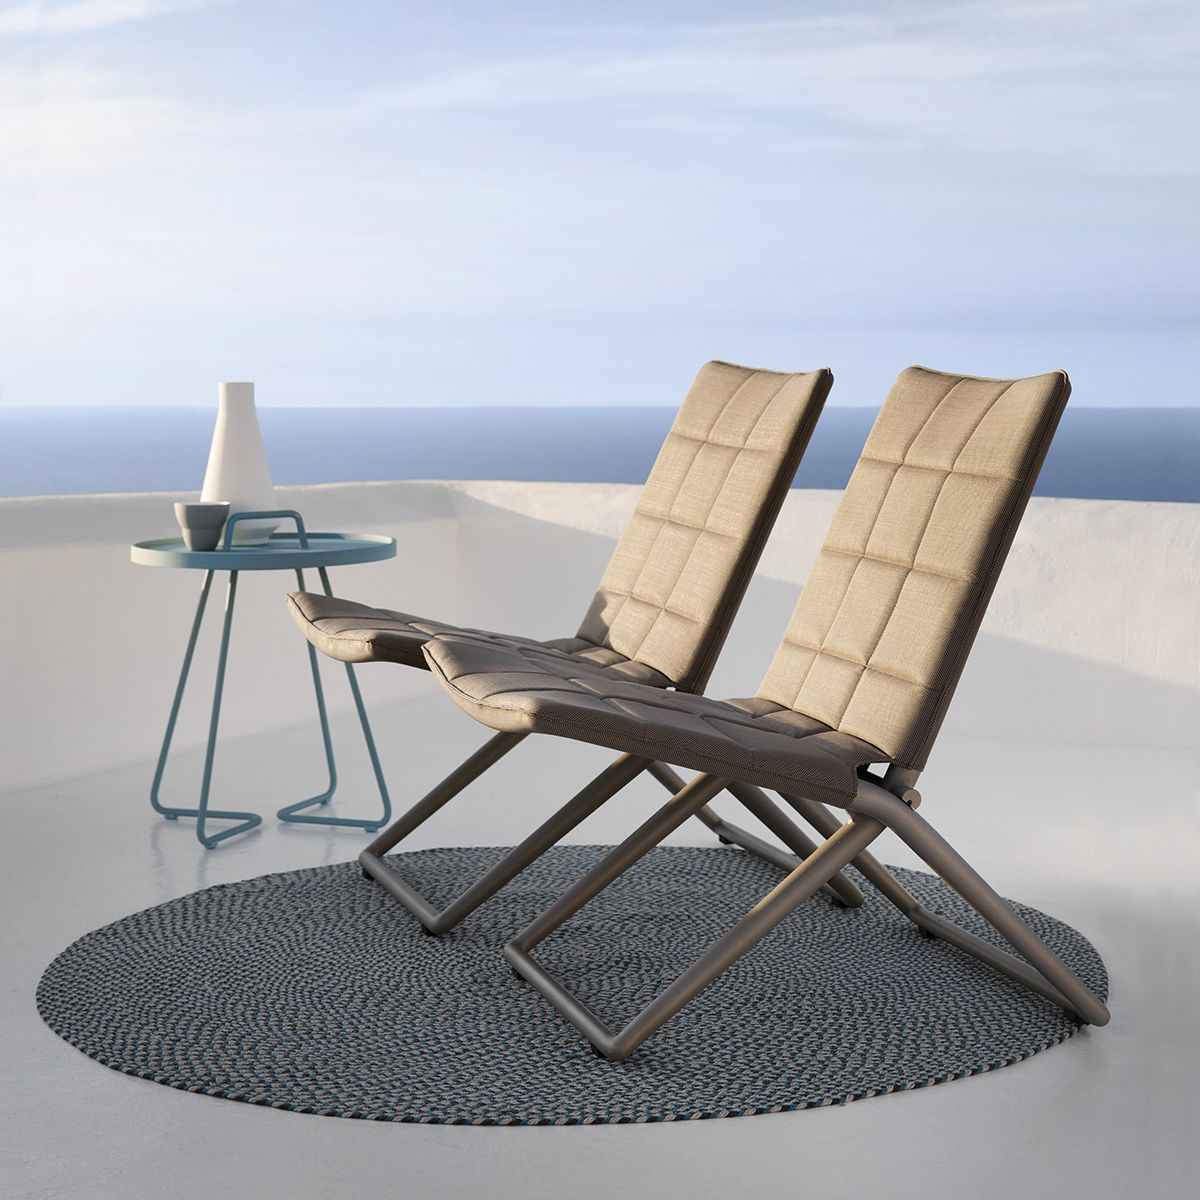 Ibiza Outdoor Folding Chair In Taupe | Thos. Baker